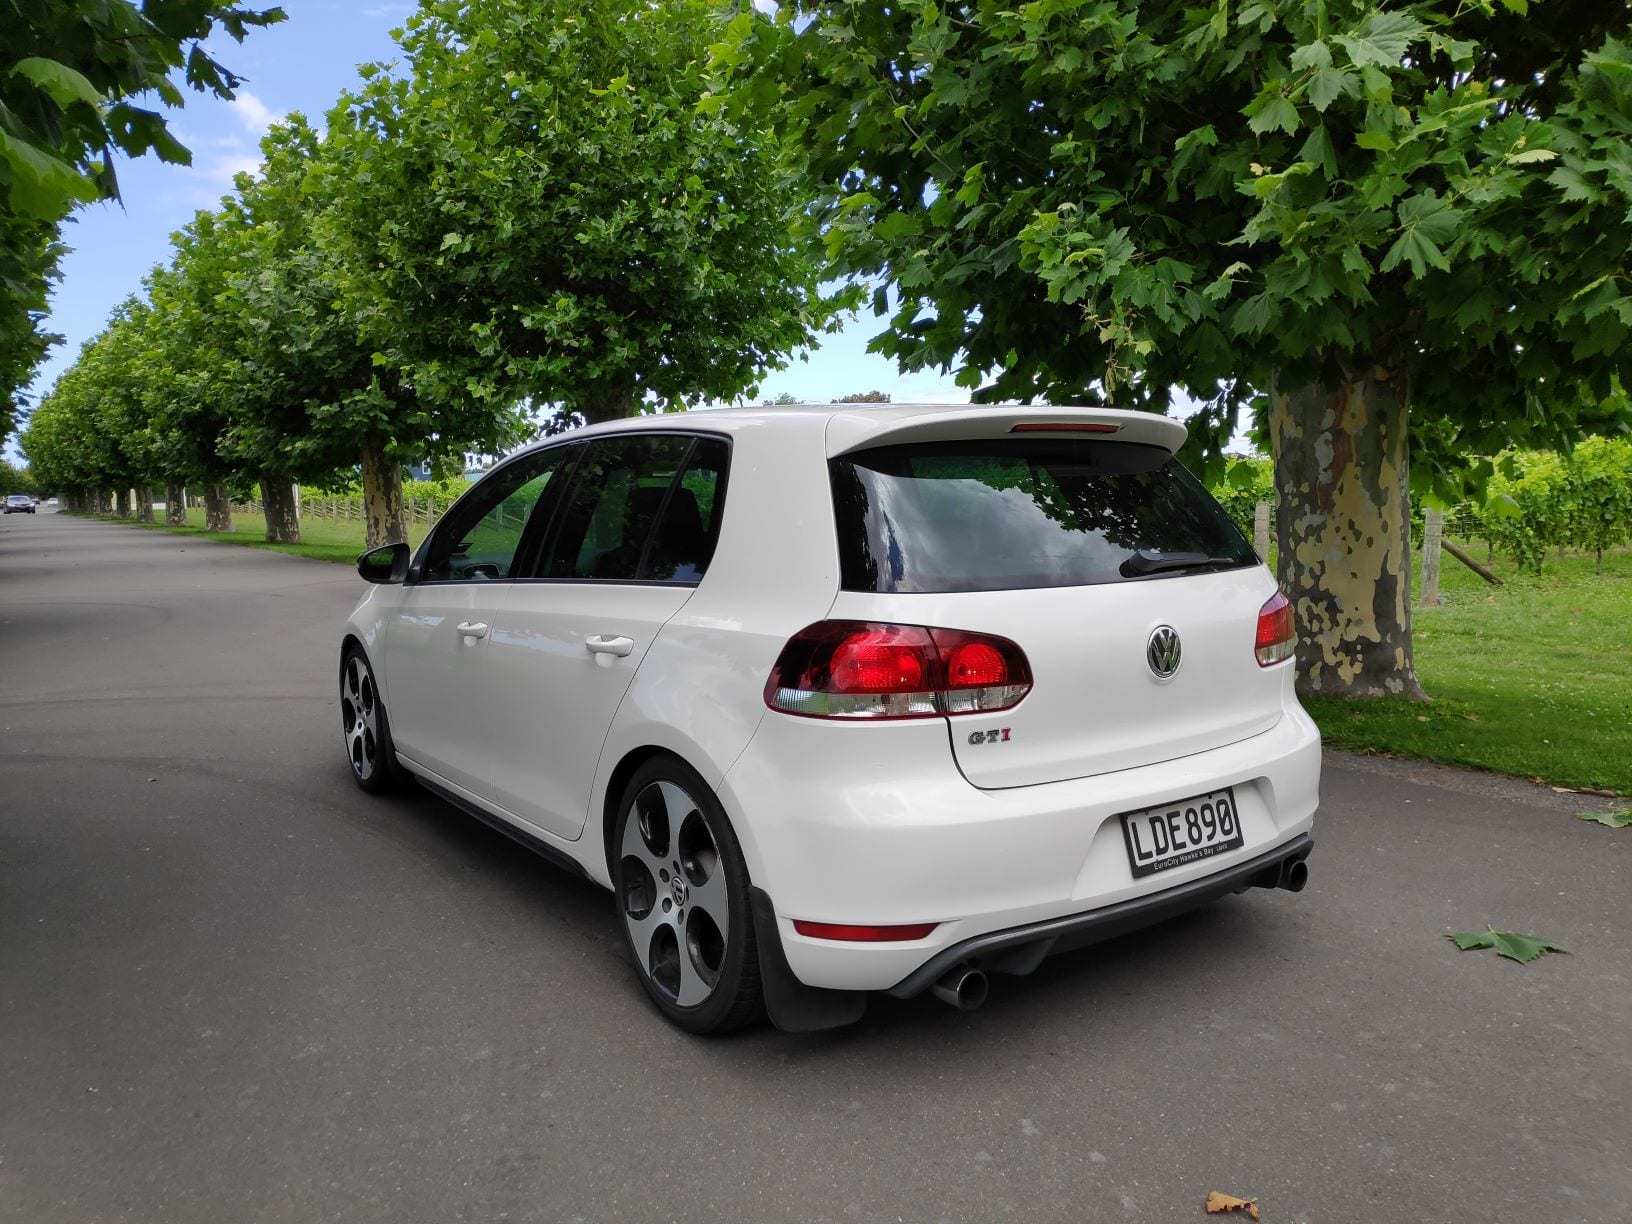 The magnificent mark 6 Volkswagen Golf GTI finished in candy white.